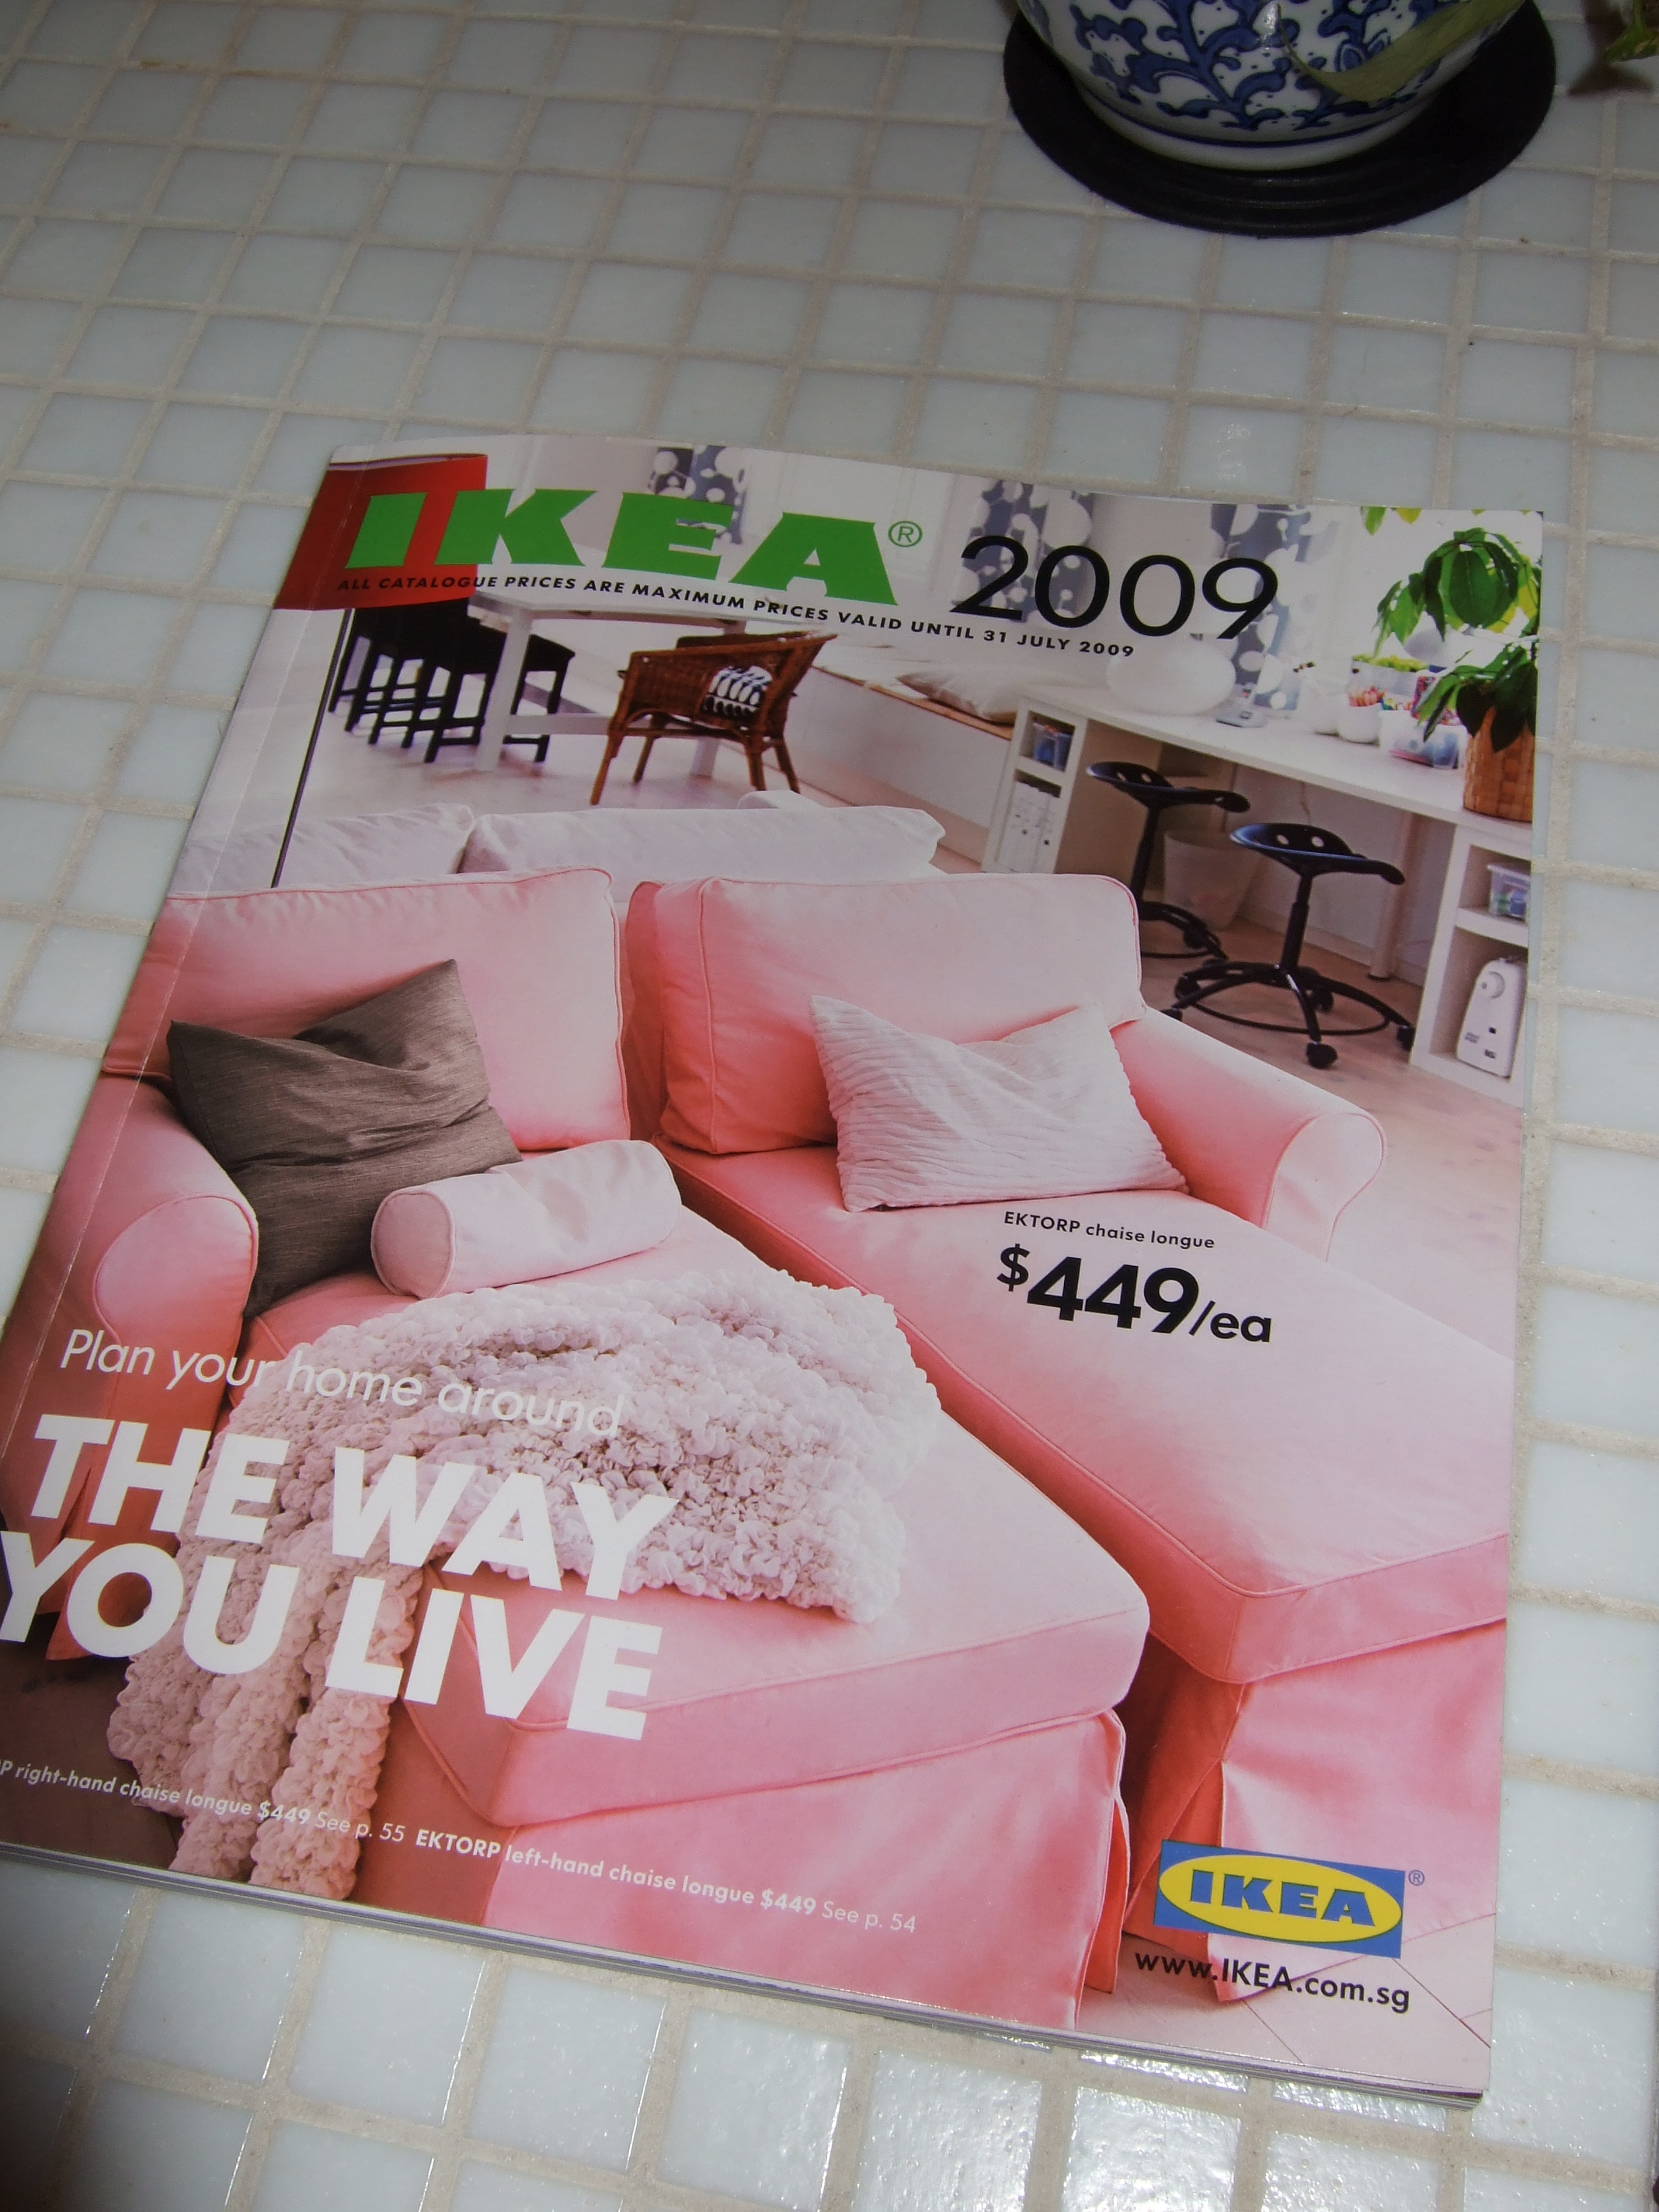 Ikea Catalogue 2009 august | 2008 | beerkaki